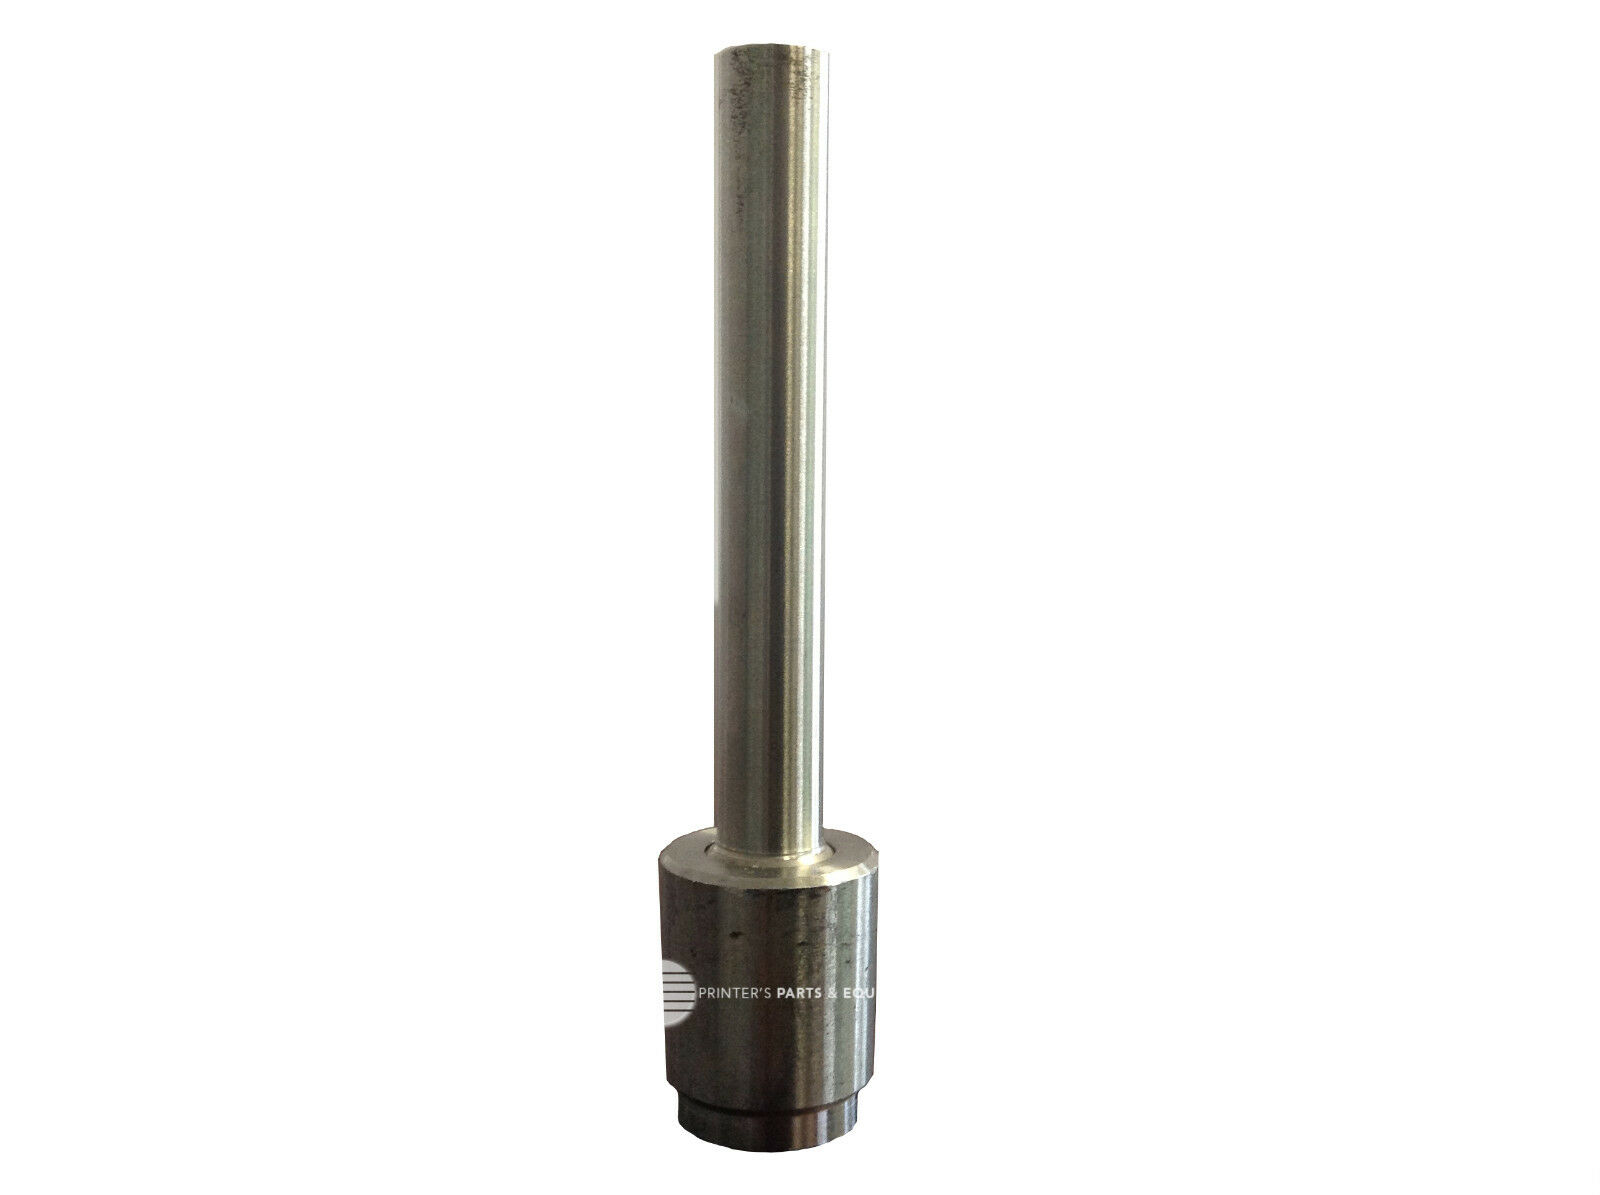 """CHALLENGE 2.5/"""" DRILL BIT 3//8 9.5mm Paper Drill Free Shipping Bindery Parts"""